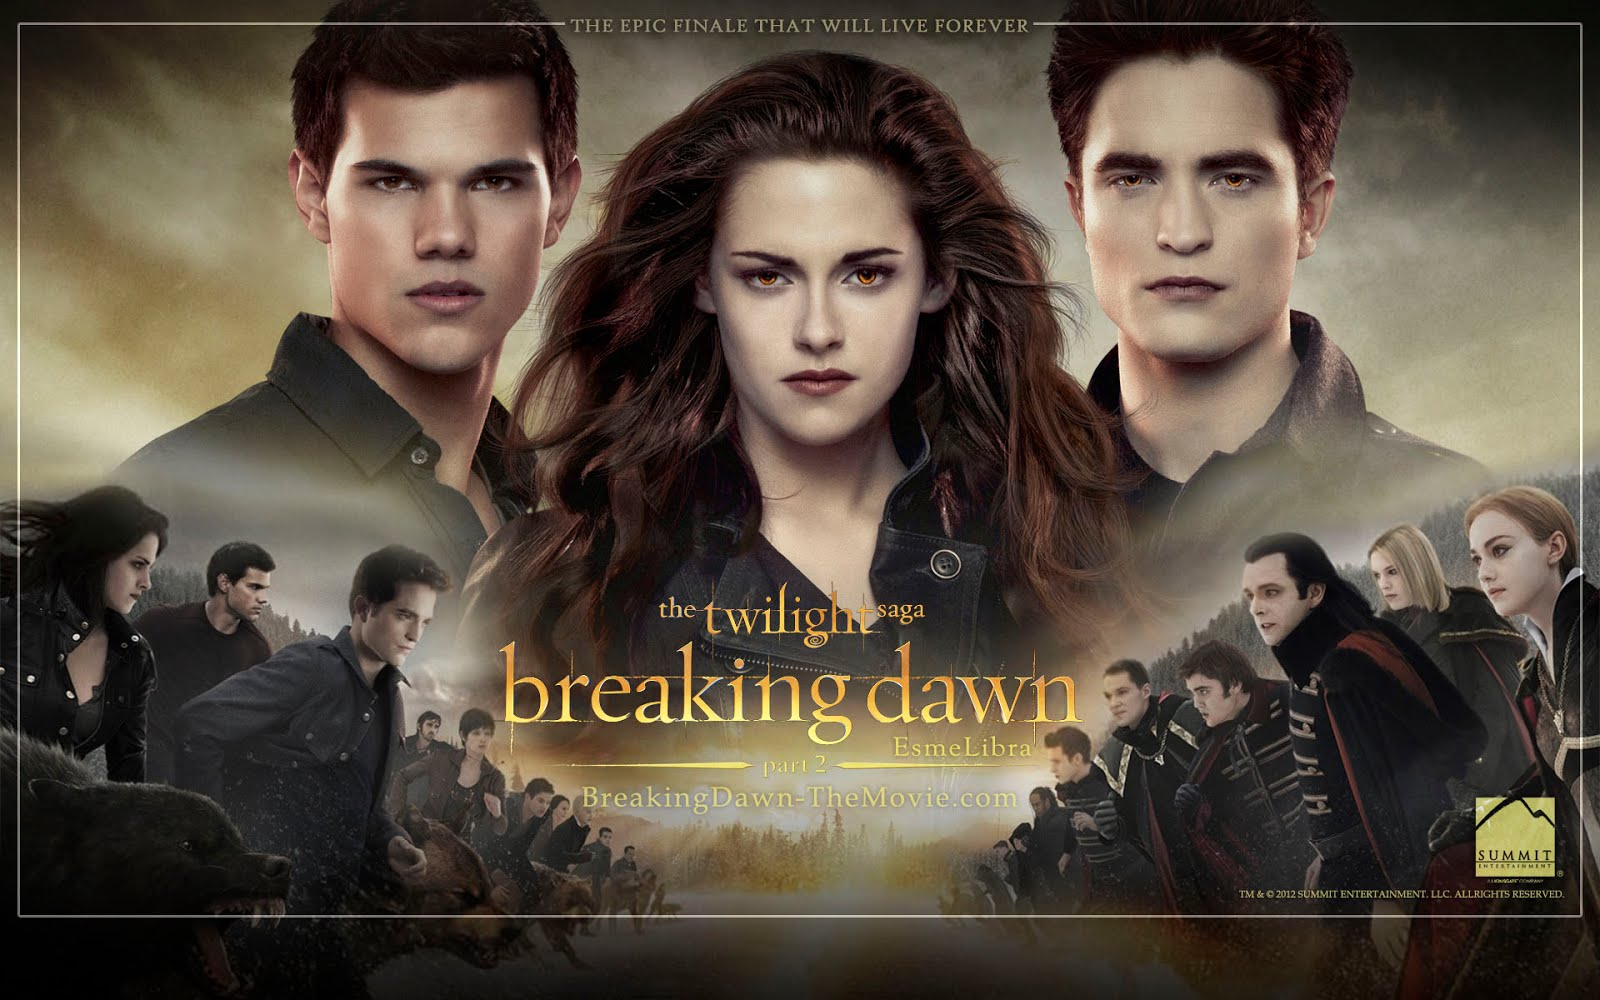 New 'Breaking Dawn Part 2' Desktop Wallpapers